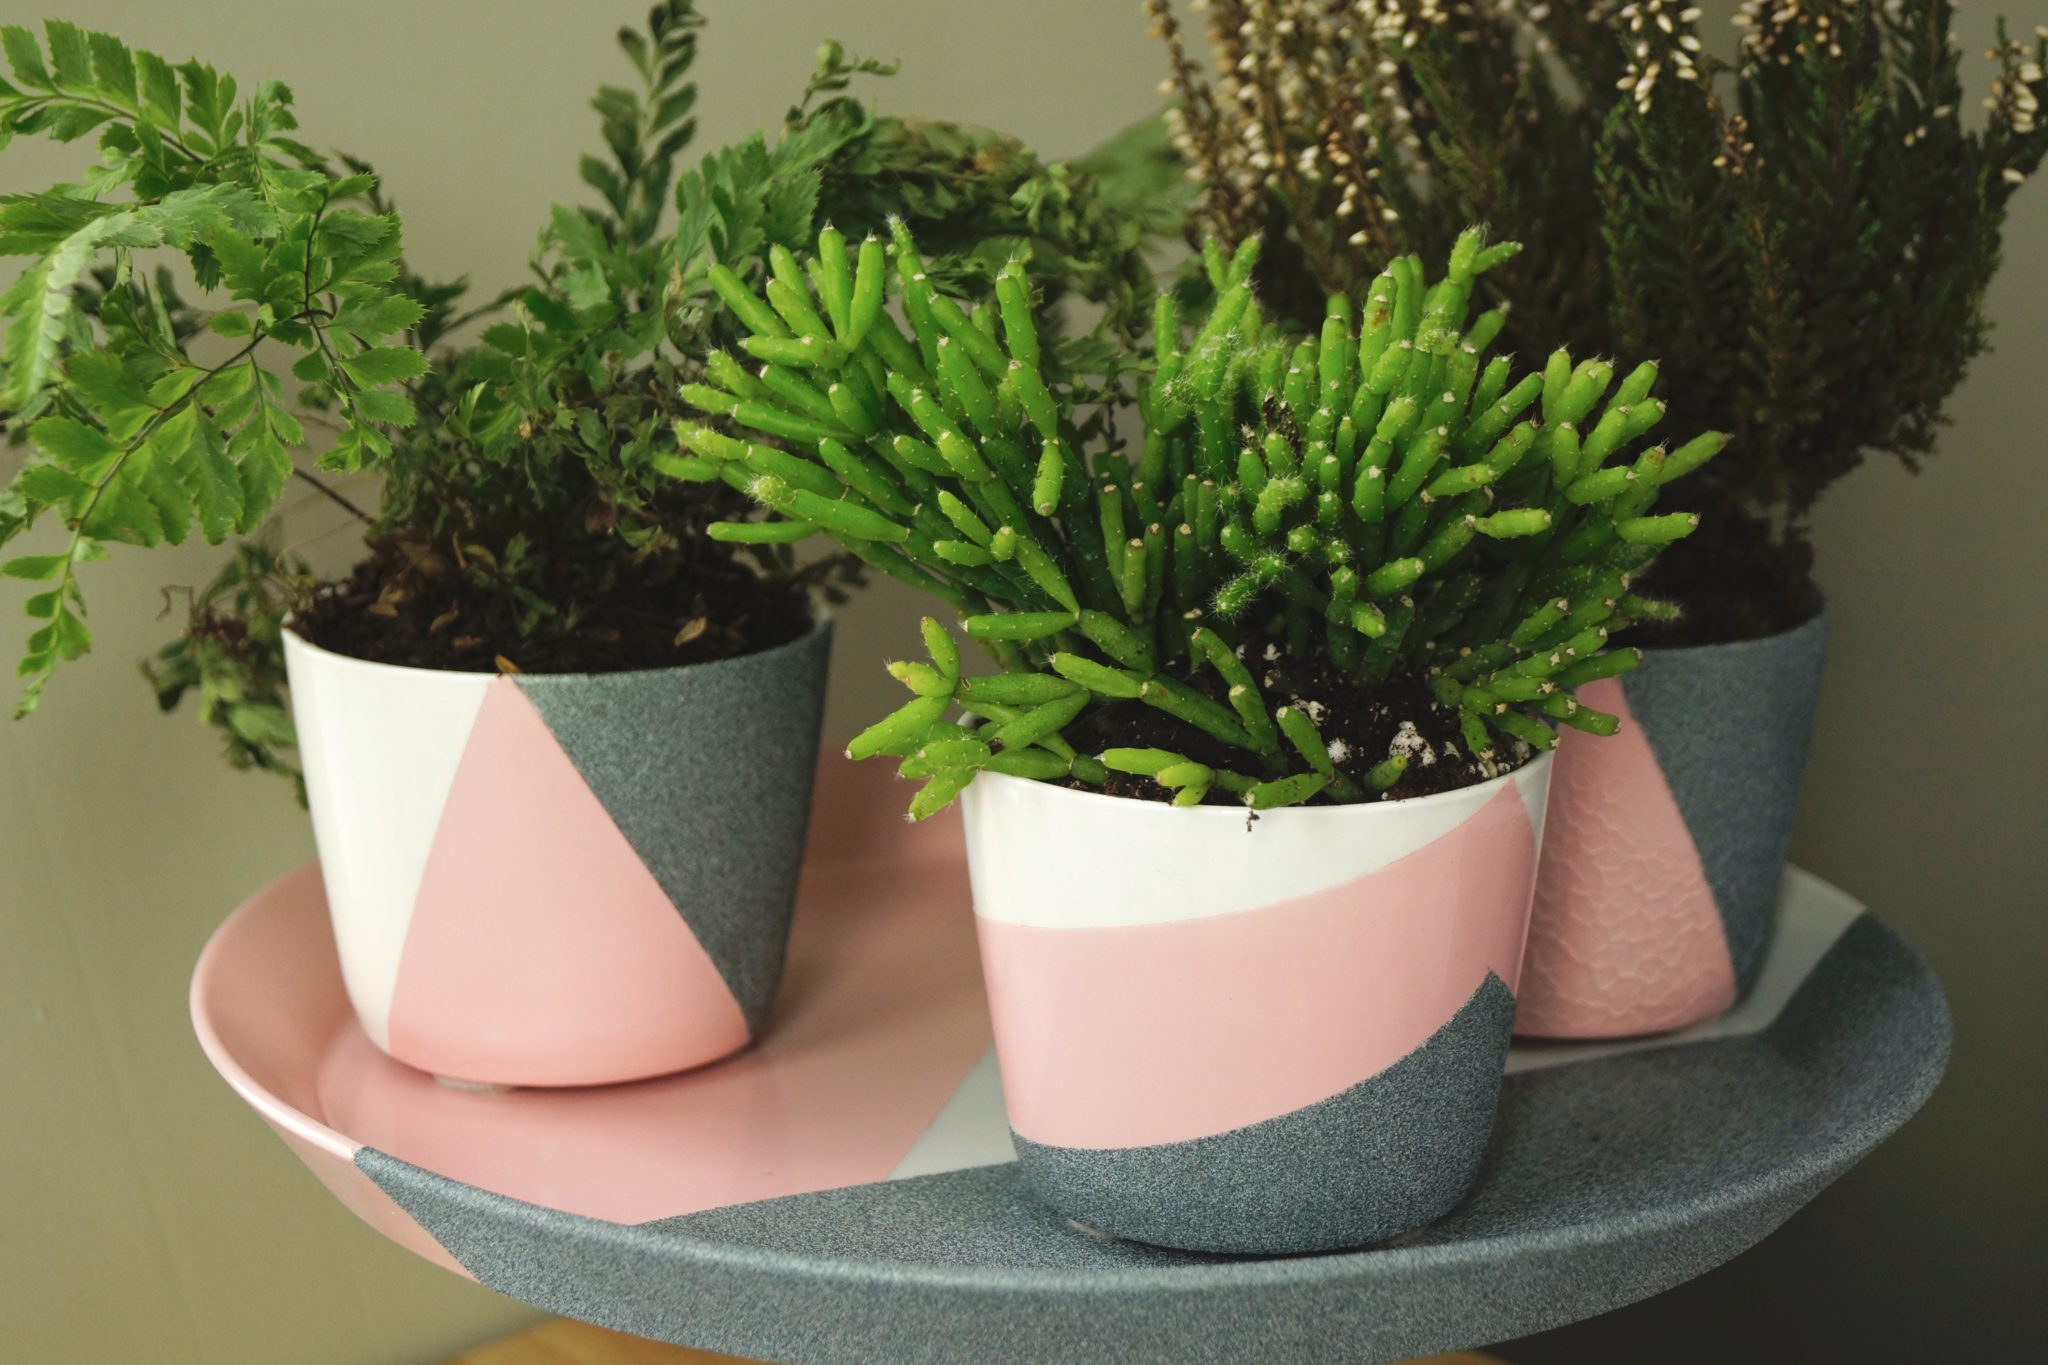 DIY Geometric Spray Paint Planters - Do It Yourself - Design It Yourself - CB2 - Crate and Barrel - Crate & Barrel - Plant - Krylon ColorMaster - Grante Stone Spray Paint - TheKillerLook.com - The Killer Look